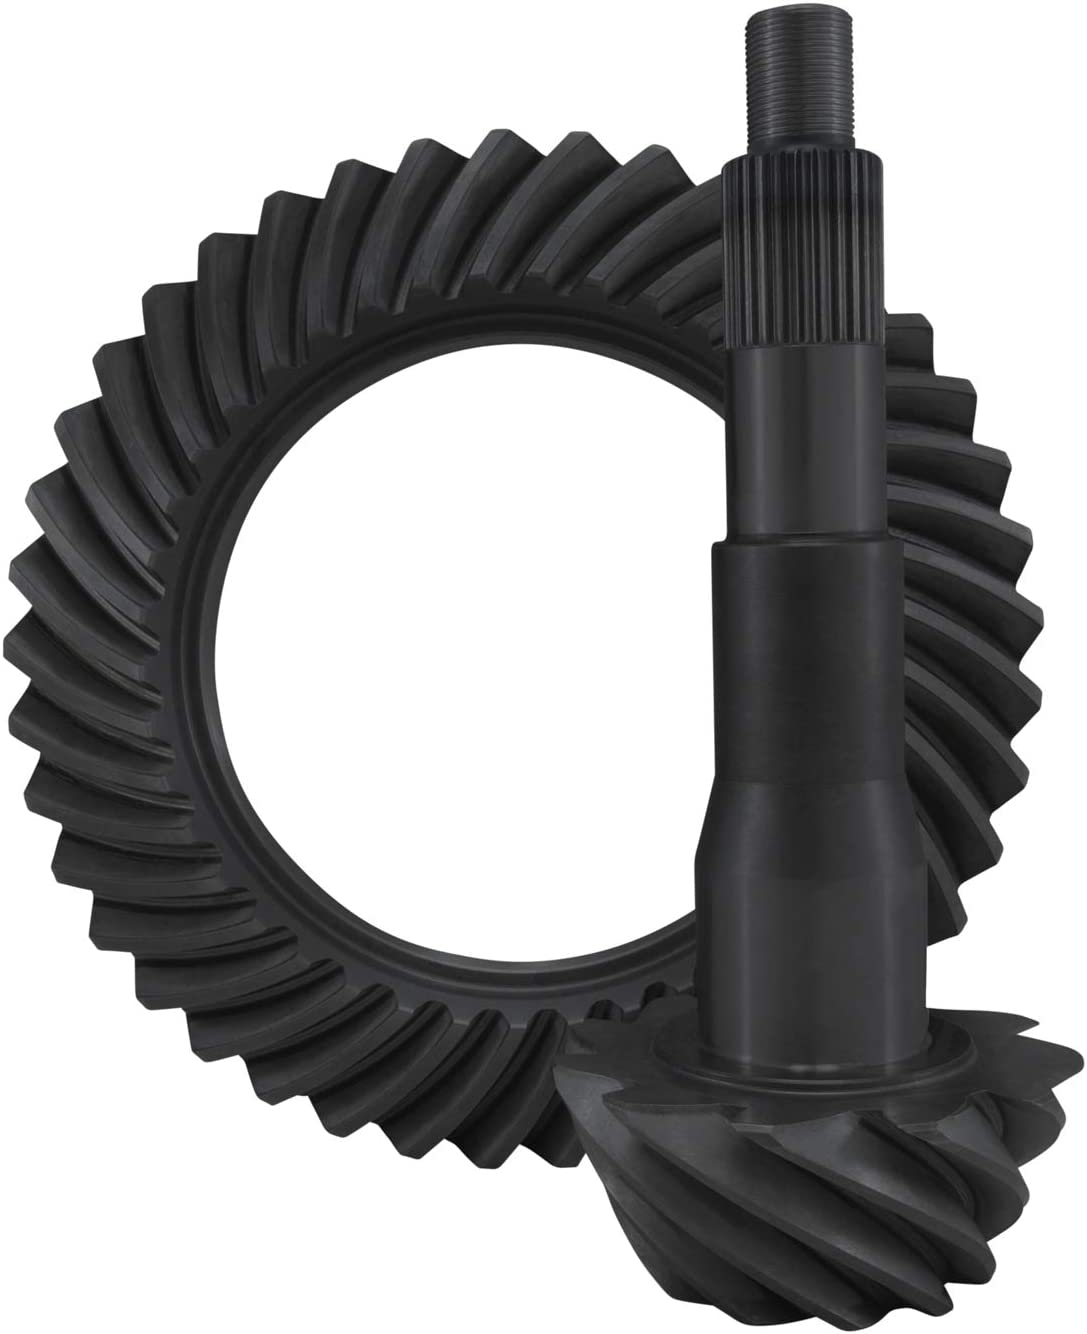 High Performance Ring /& Pinion Gear Set for GM 11.5 Differential Yukon Gear /& Axle YG GM11.5-456